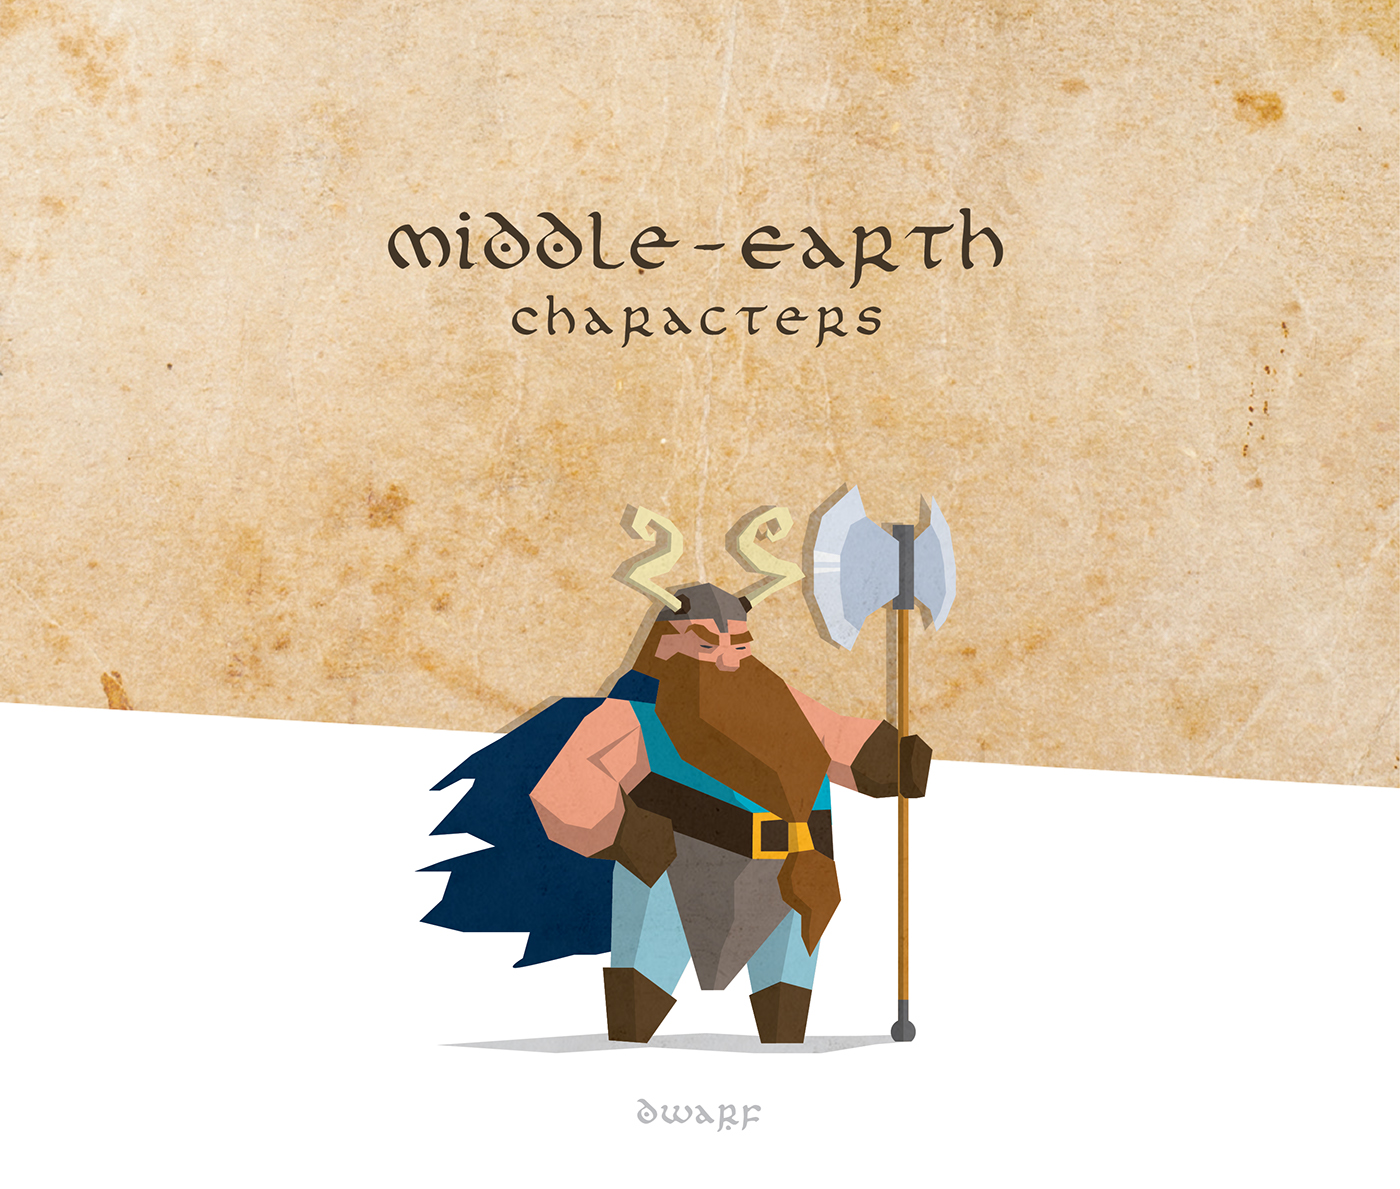 middle earth hobbit Silmarillion map infographic elf orc history illustrations Character figure creative flat design model